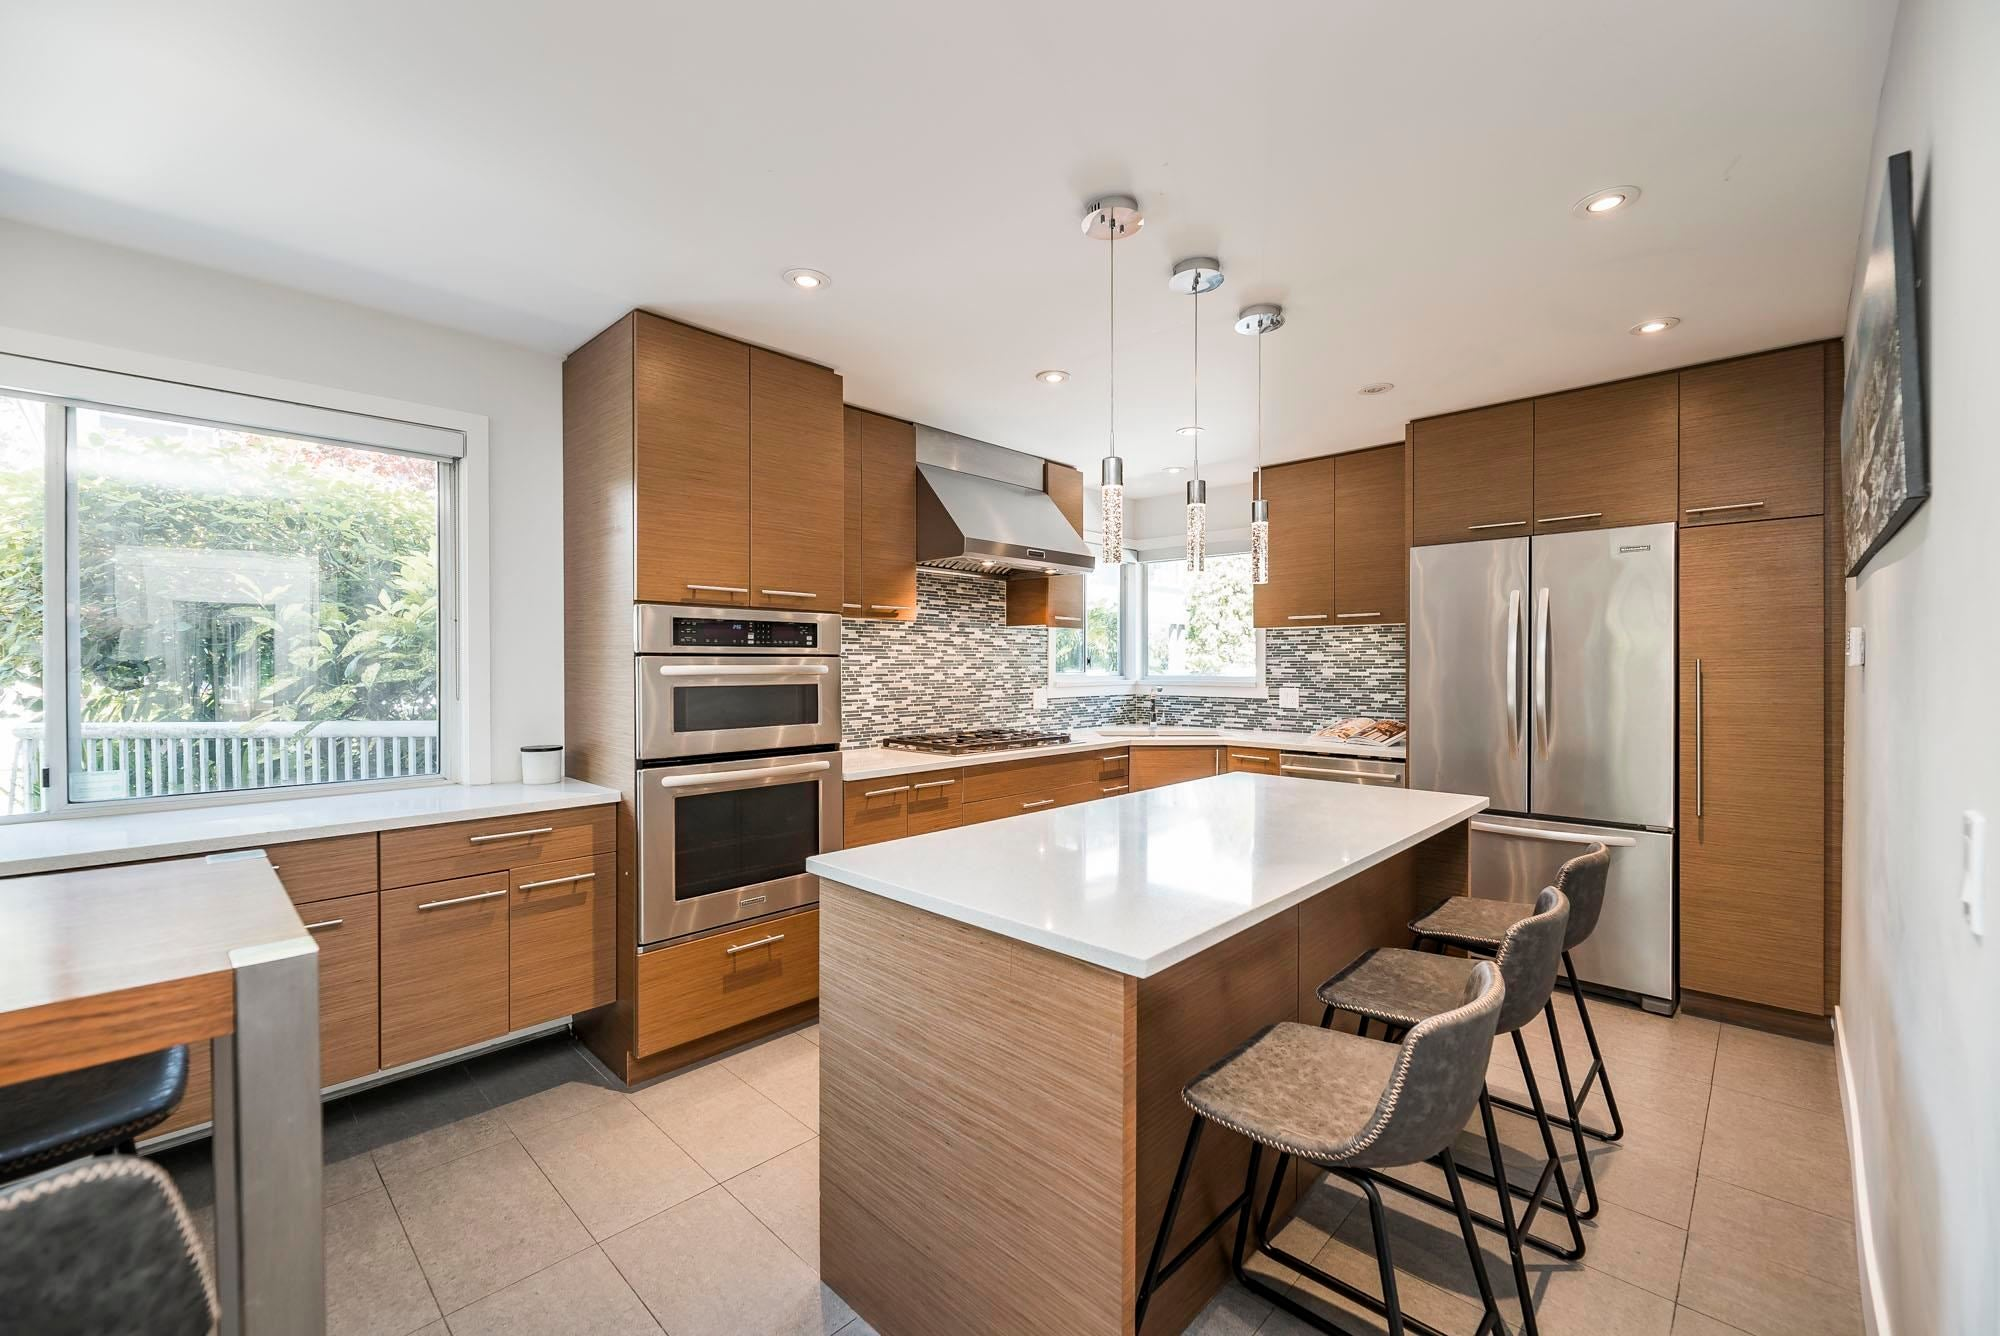 2 234 W 17TH STREET - Central Lonsdale Townhouse for sale, 4 Bedrooms (R2595763) - #1